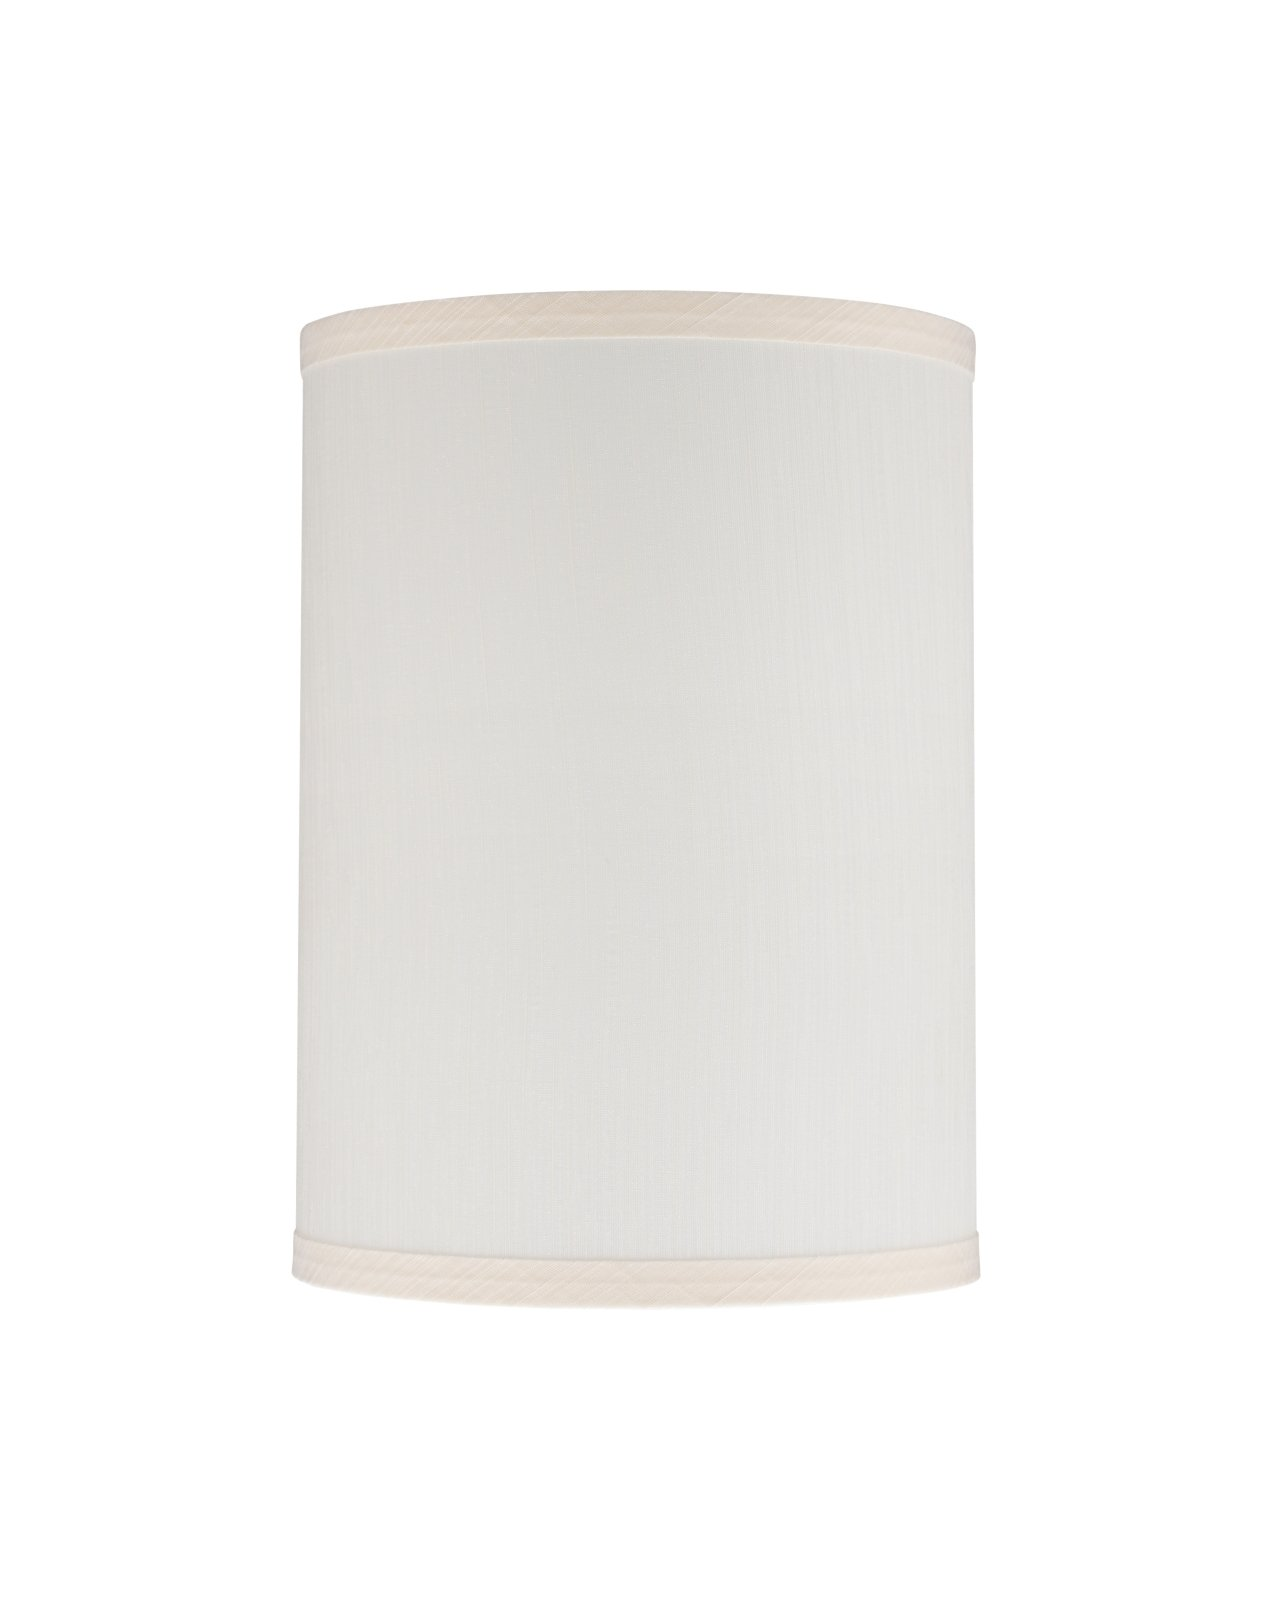 """Aspen Creative 31025 Transitional Hardback Drum (Cylinder) Shape Spider Construction Lamp Shade in Eggshell, 8"""" wide (8"""" x 8"""" x 11"""")"""